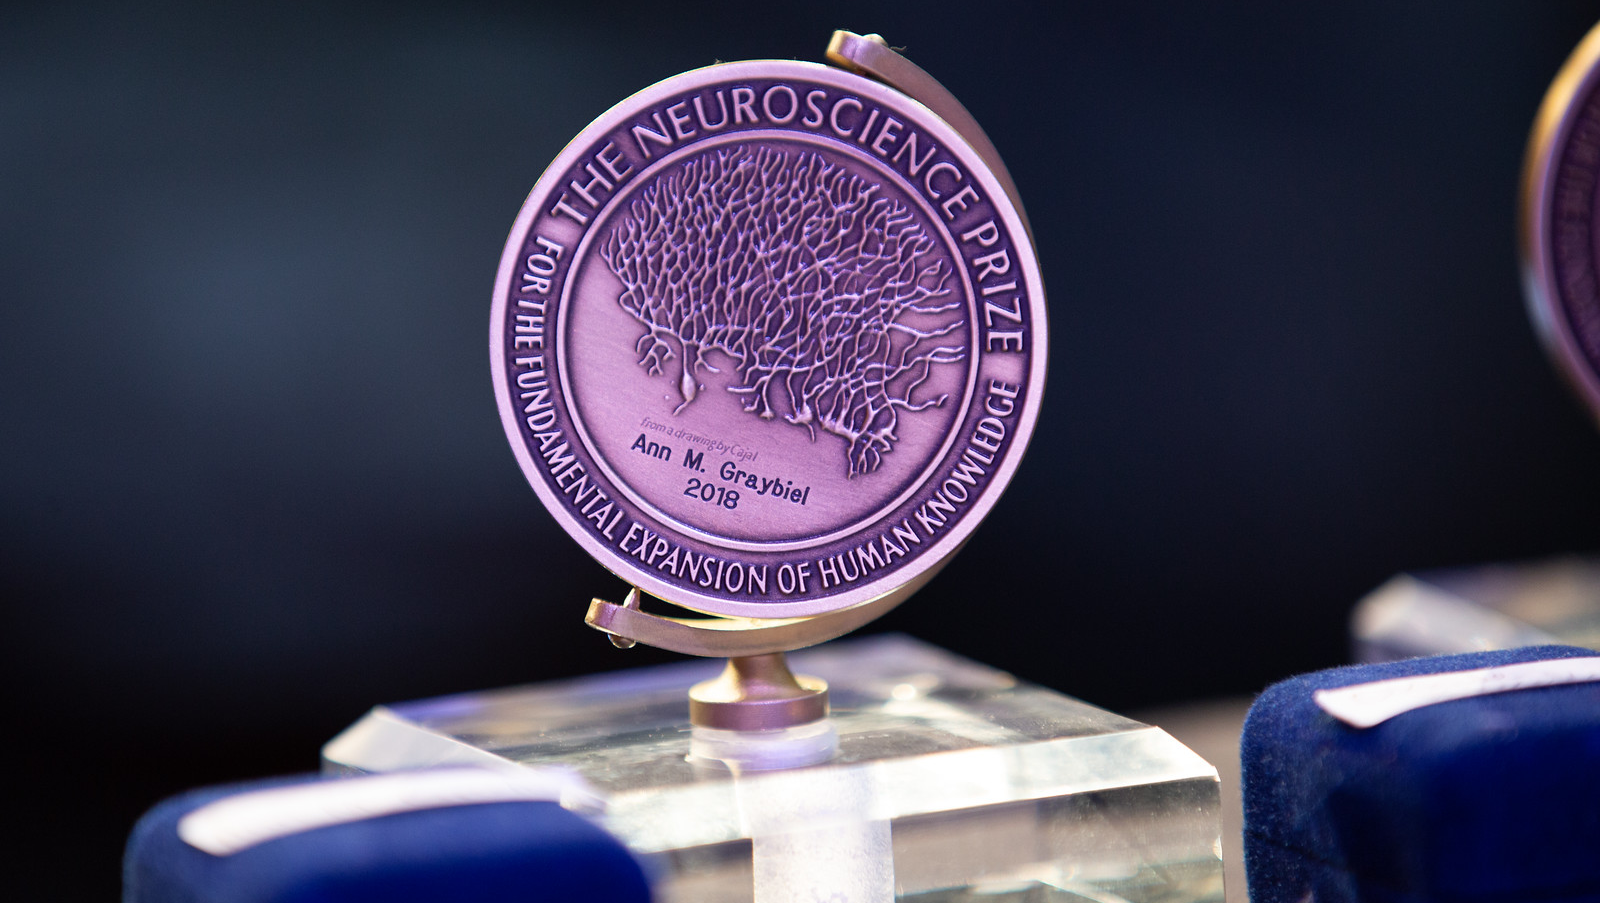 Ann M. Graybiel's the Neuroscience Prize for the Fundamental Expansion of Human Knowledge award